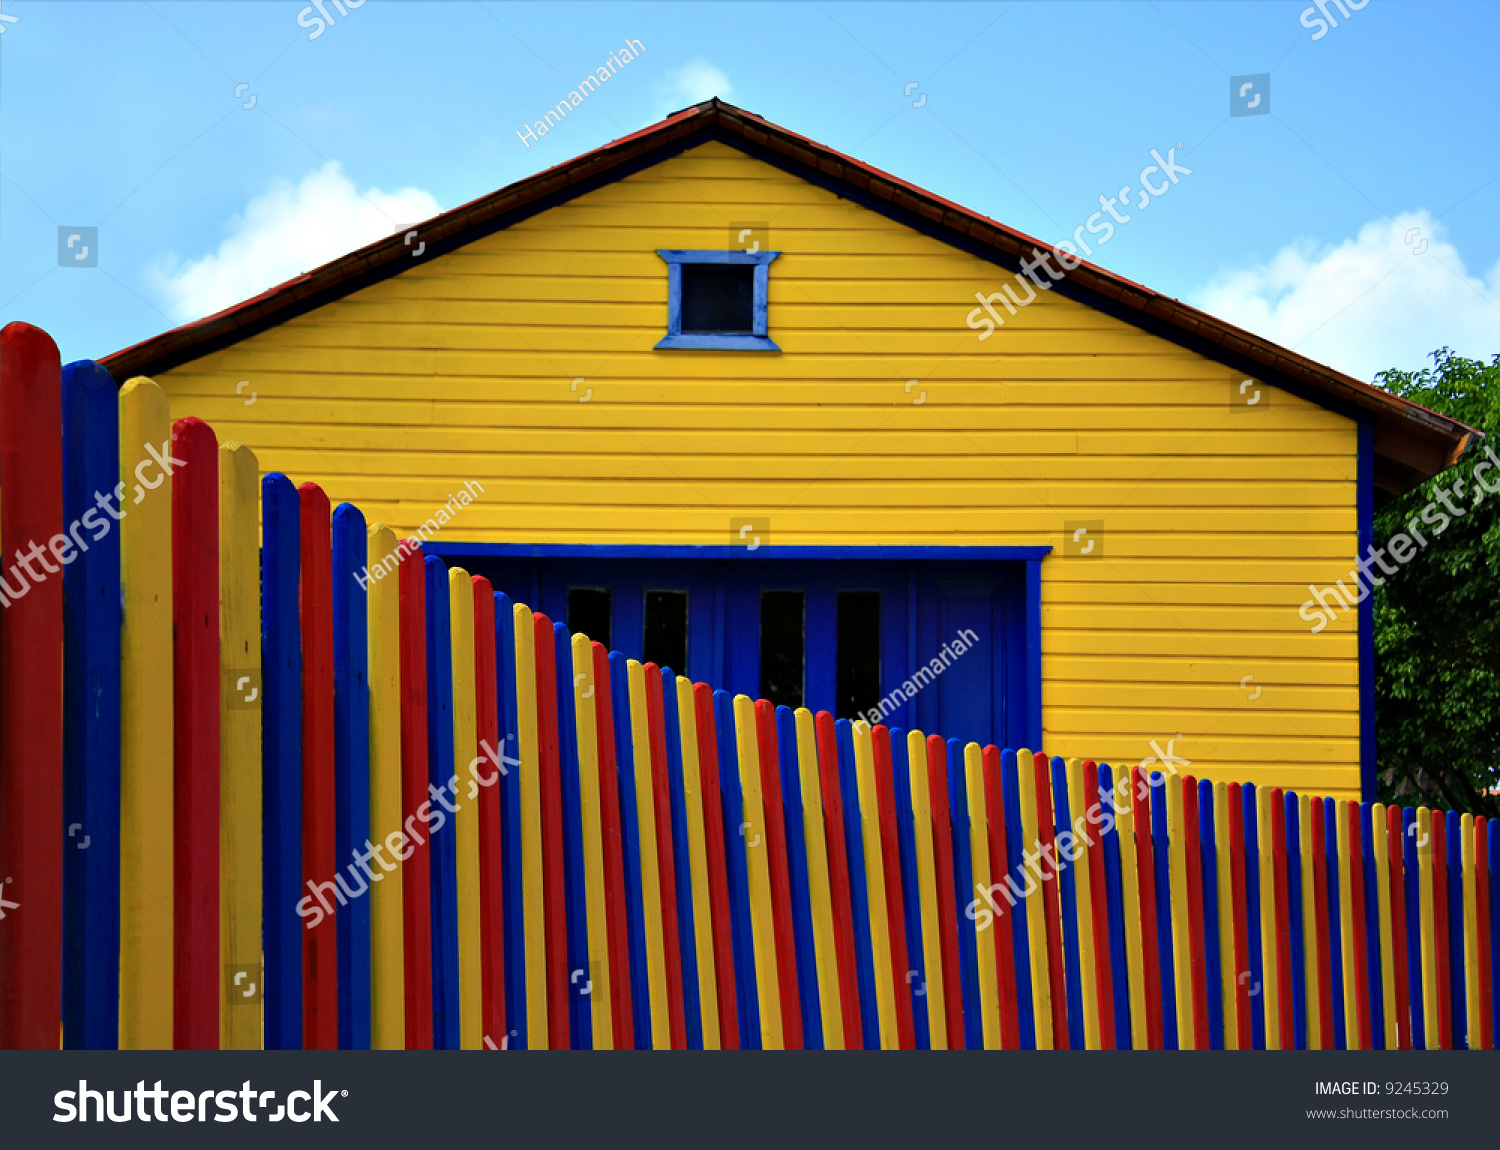 Colorful House colorful house picket fence stock photo 9245329 - shutterstock